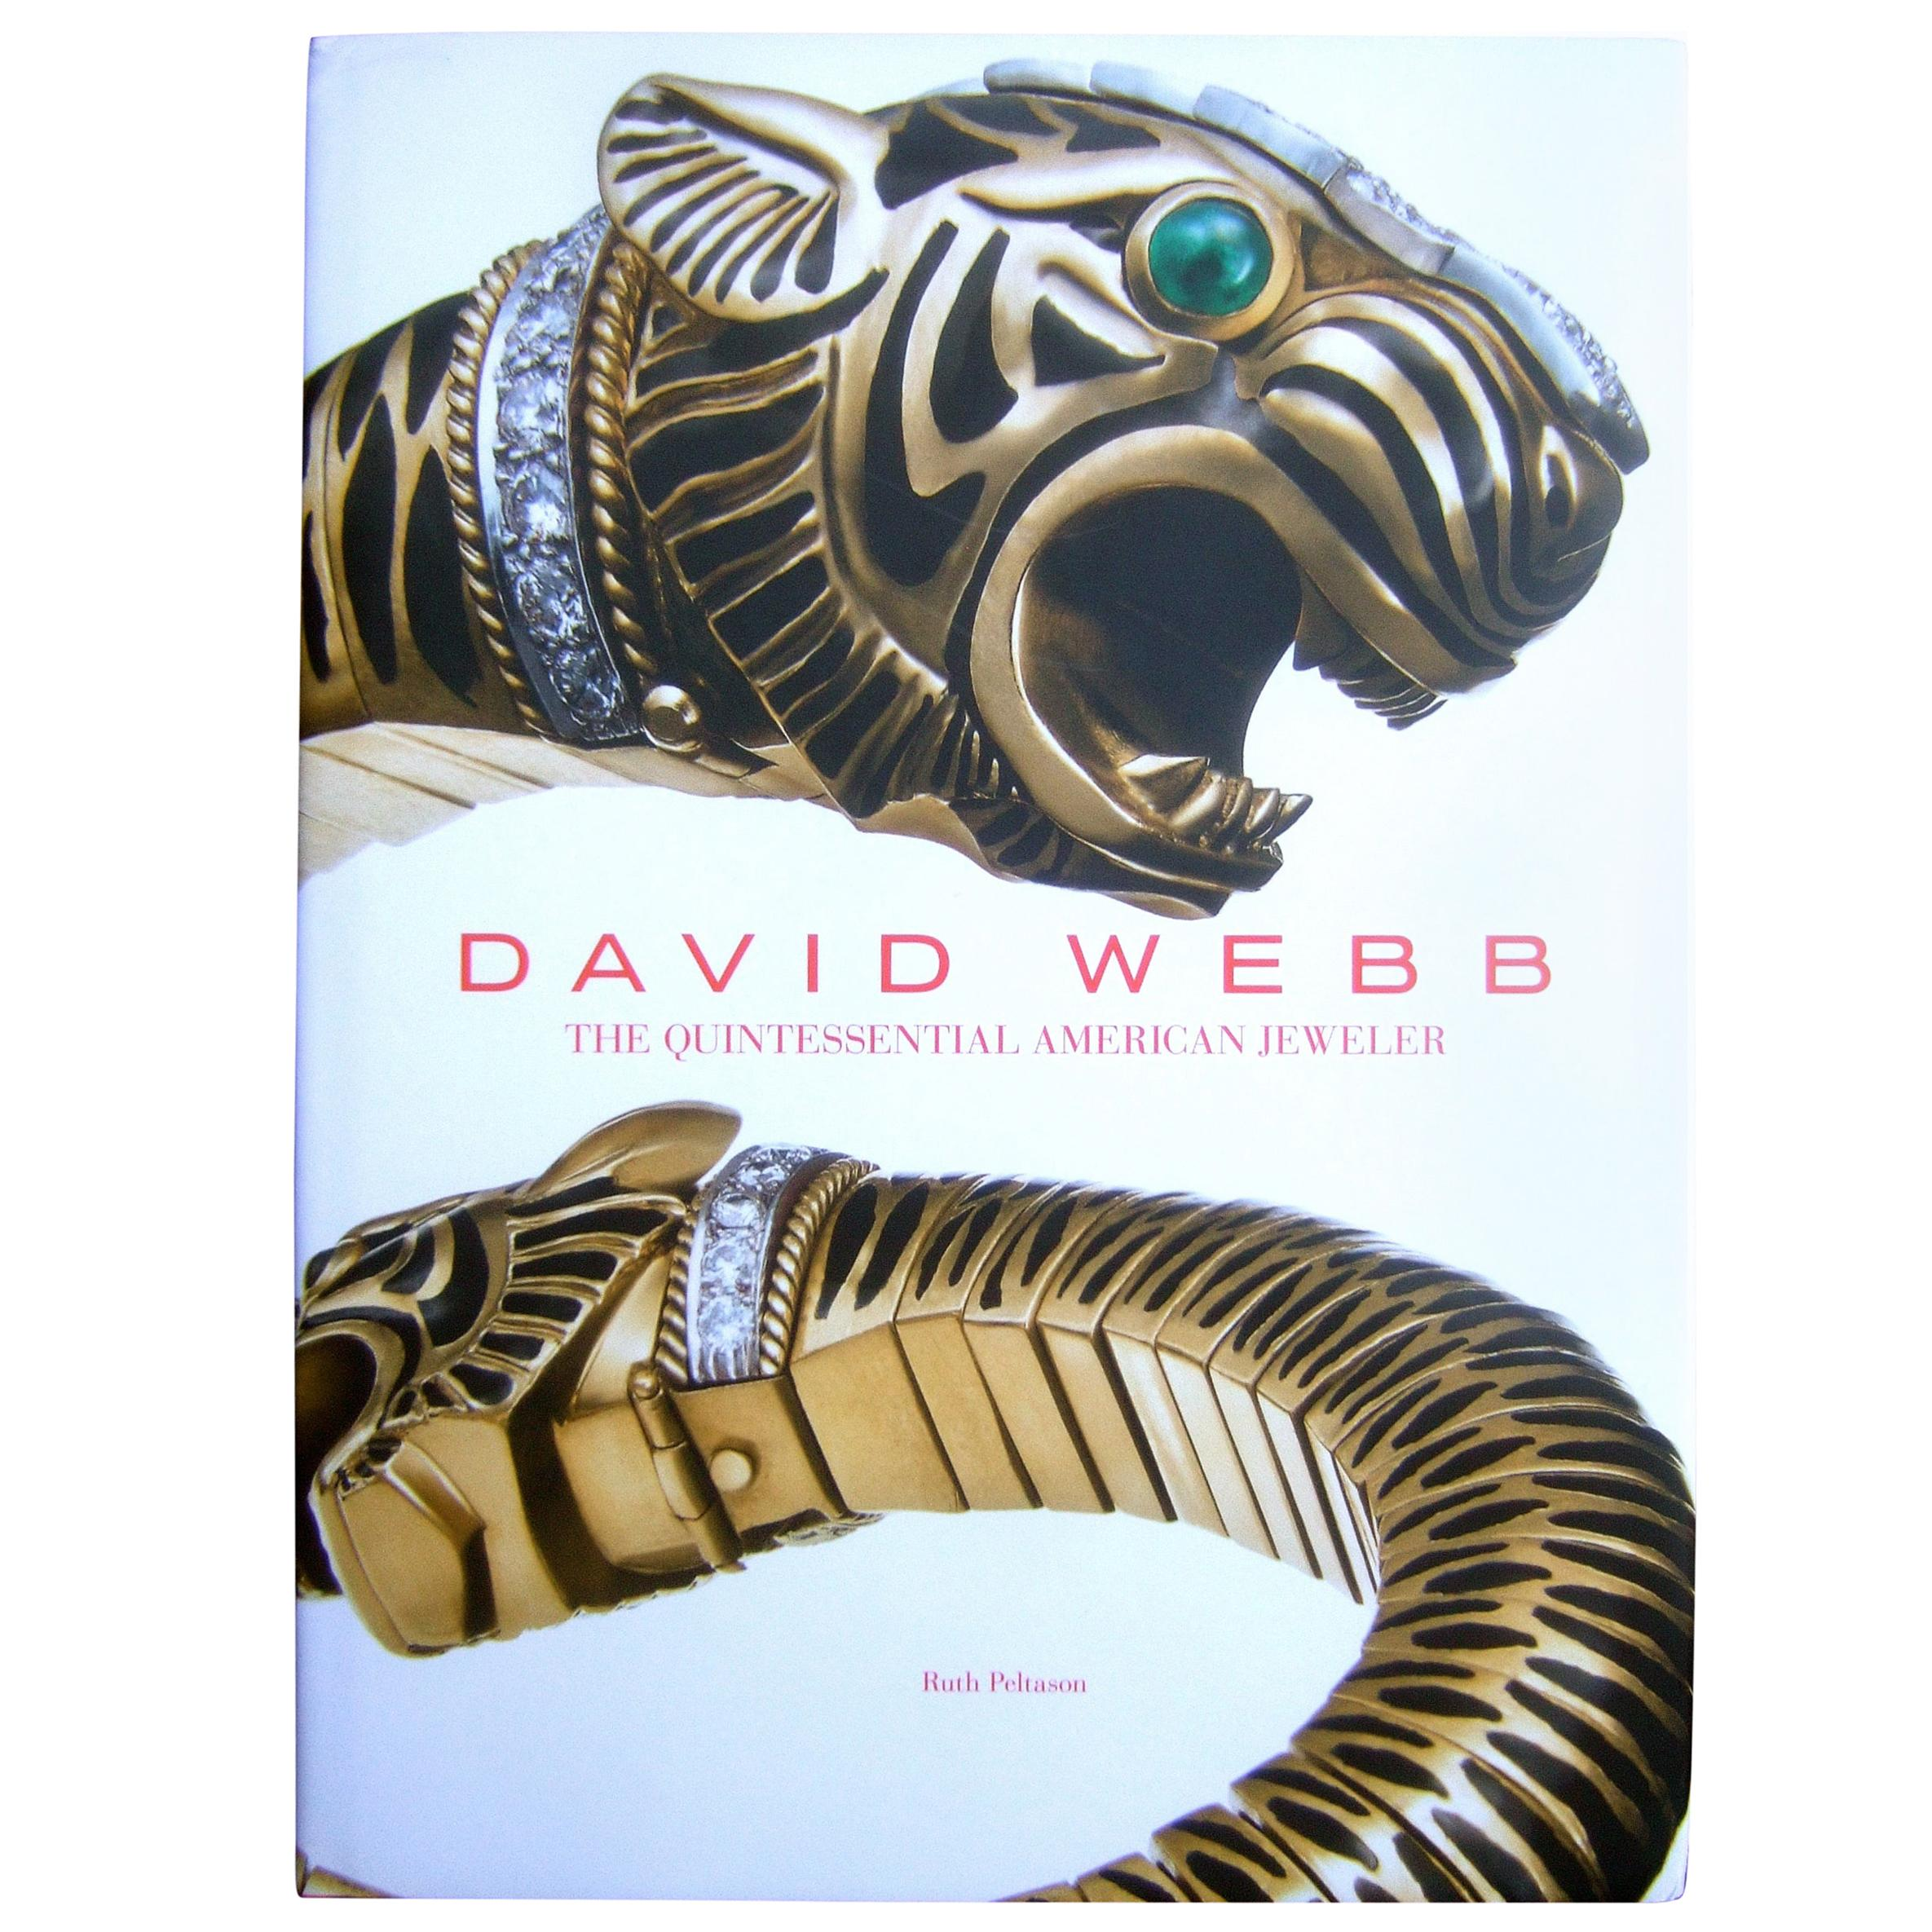 David Webb The Quintessential American Jeweler Book c 2013